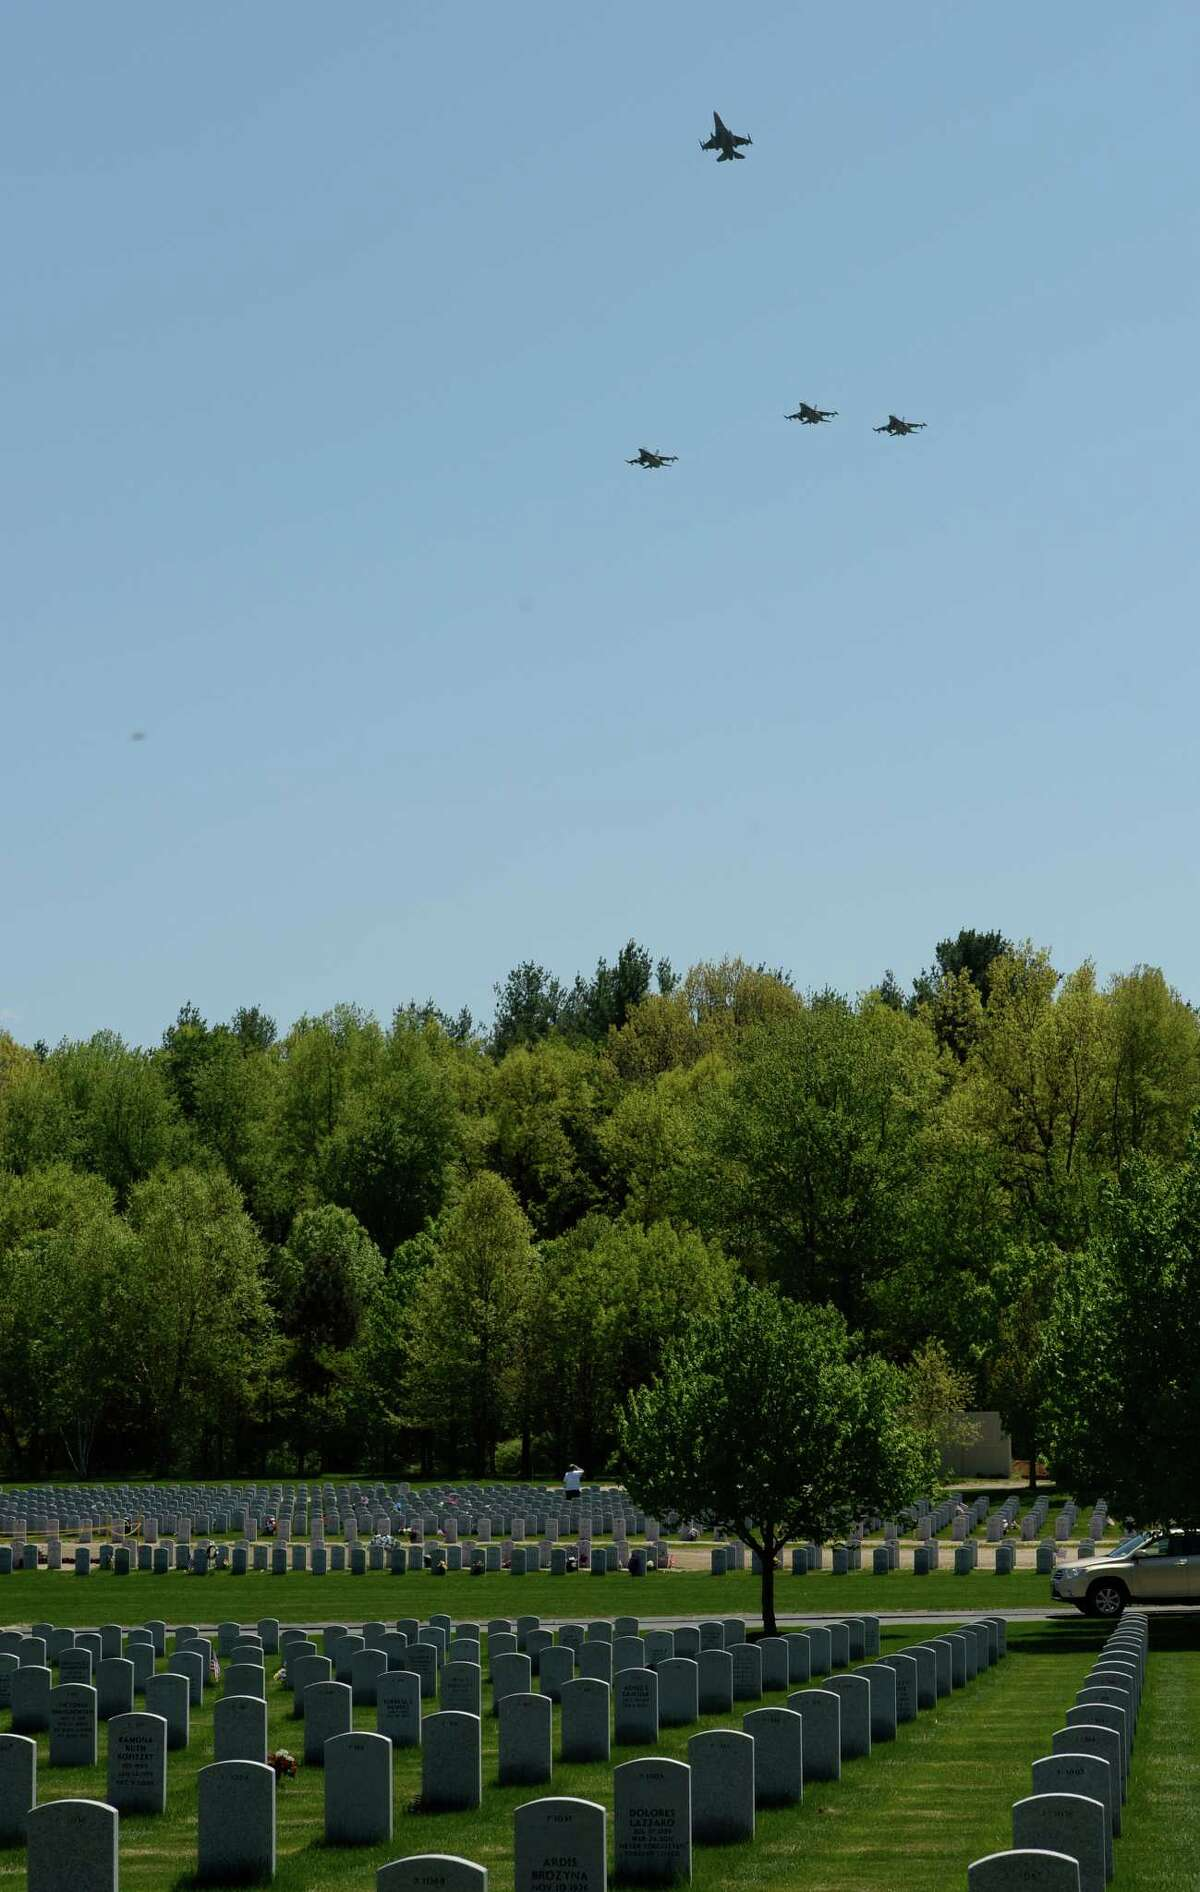 Members of the 158th Fighter Wing known as the Green Mountain Boys perform the missing man formation in the skies above the Gerald B.H. Solomon National Cemetery during burial services for Major General Robert Knauff Tuesday afternoon, May 20, 2014, in Stillwater, N.Y. The retired Maj. Gen. was a former Commander of the N.Y. Air National Guard. (Skip Dickstein / Times Union)